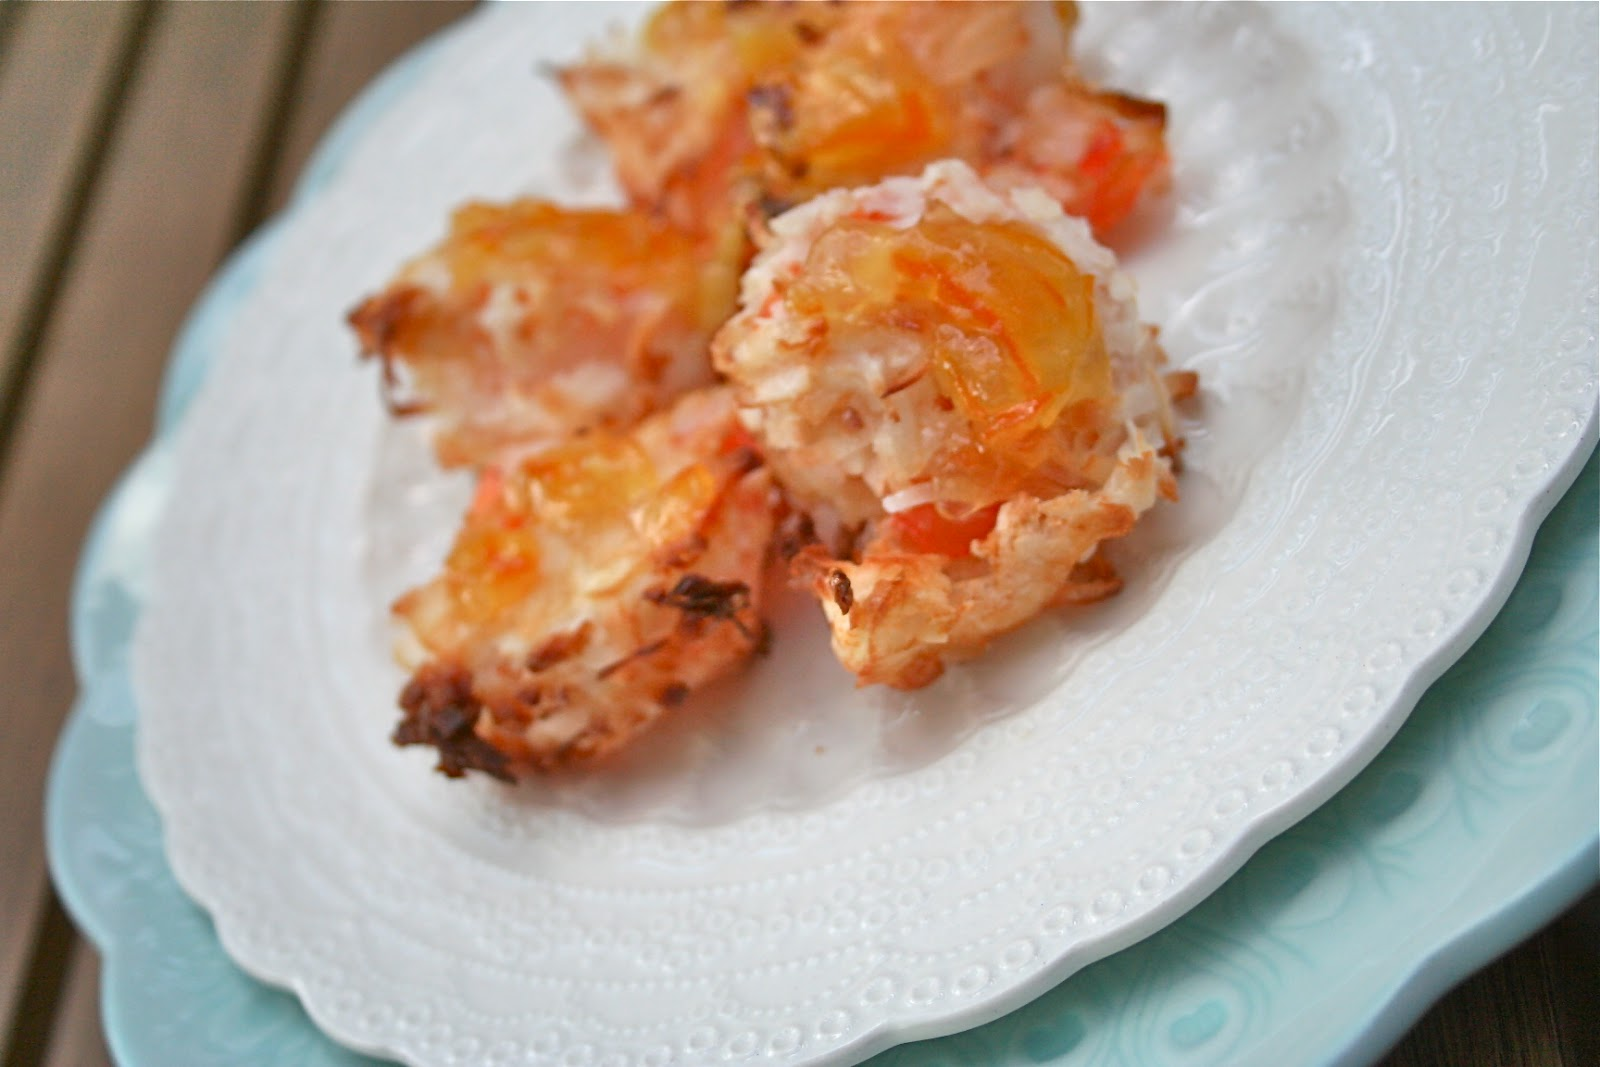 Once Upon A Pie: Baked Coconut Shrimp with Orange Sauce